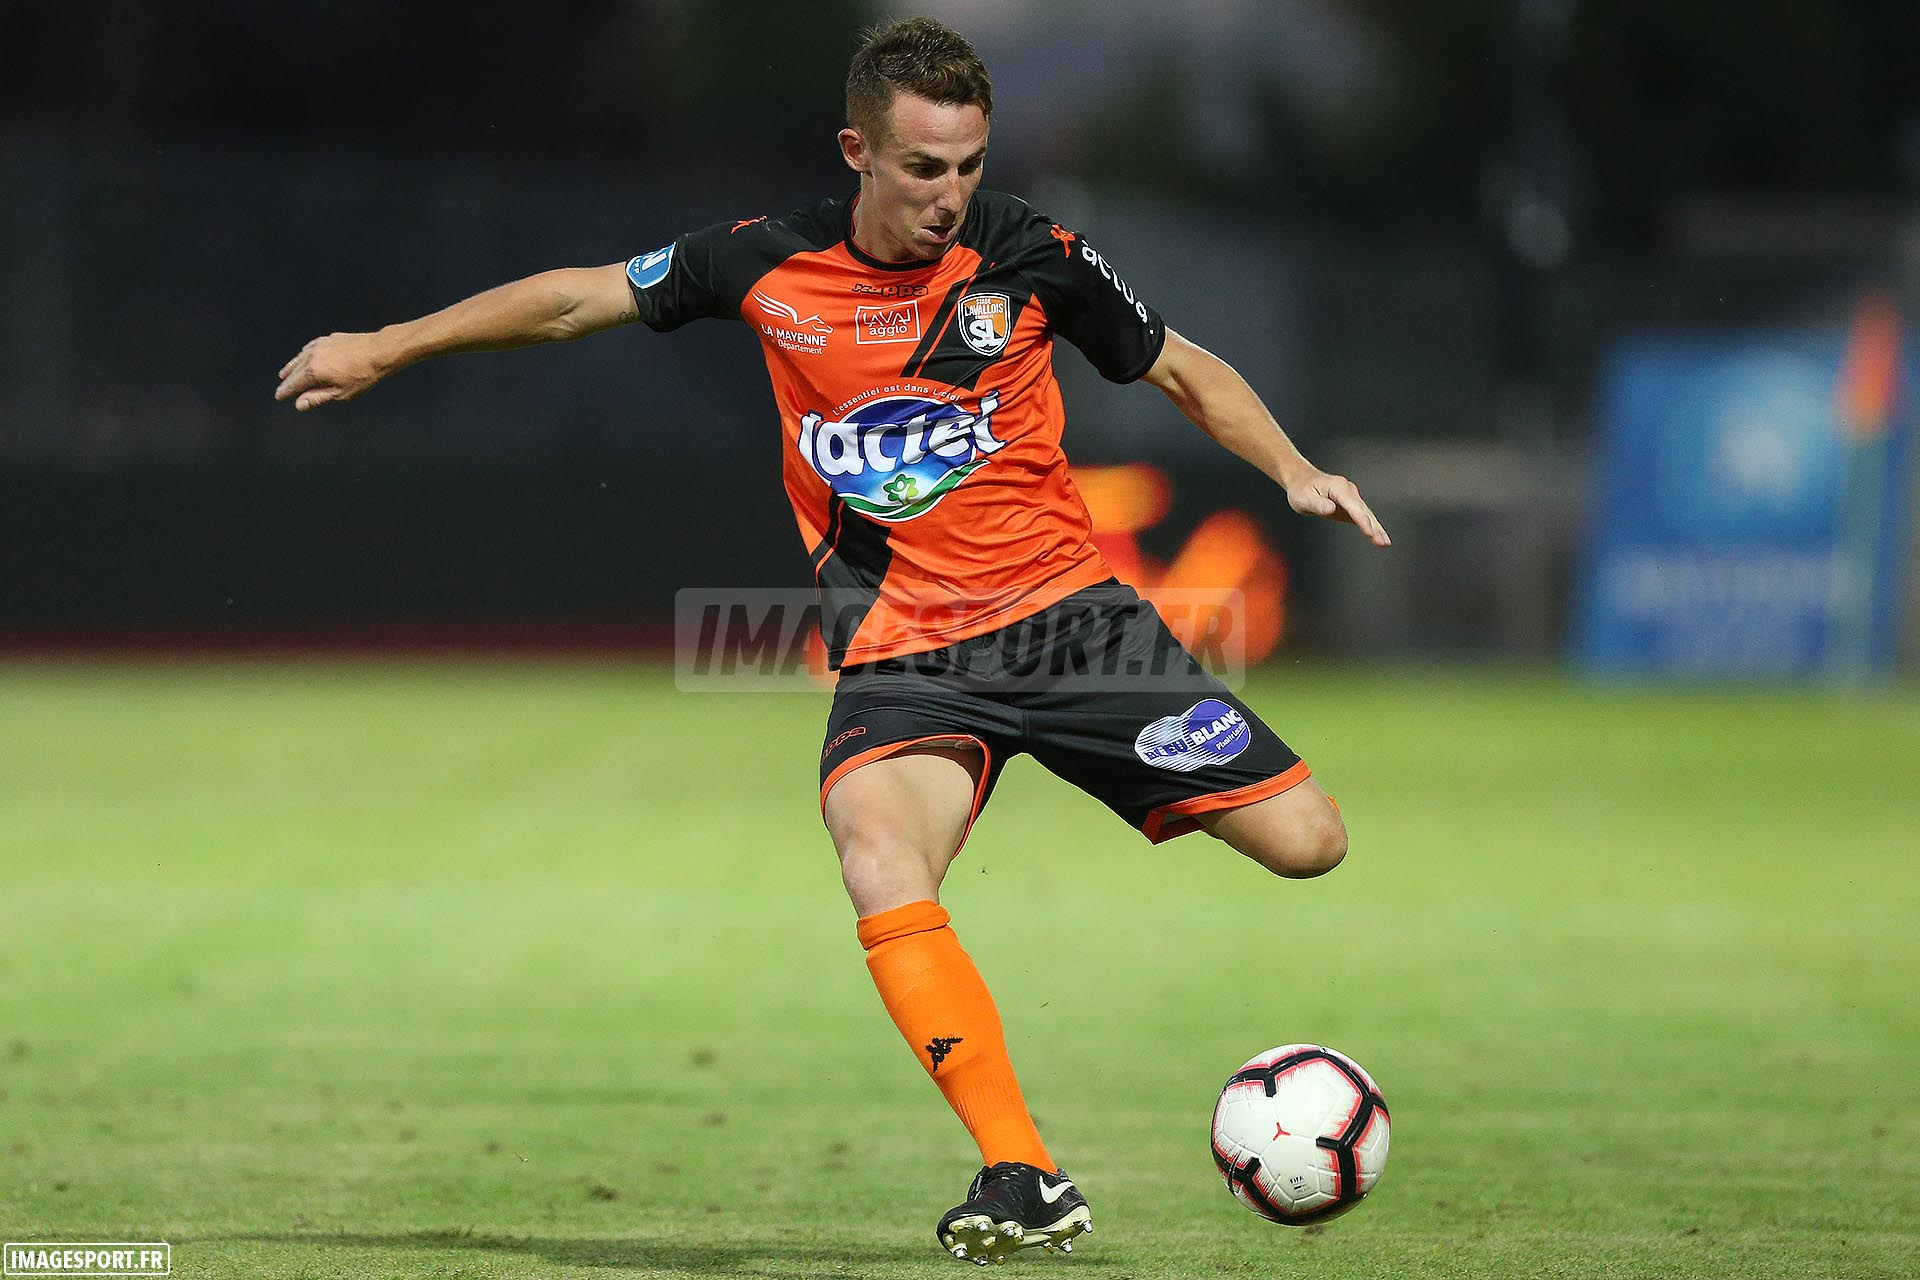 Kevin PERROT (Stade Lavallois)